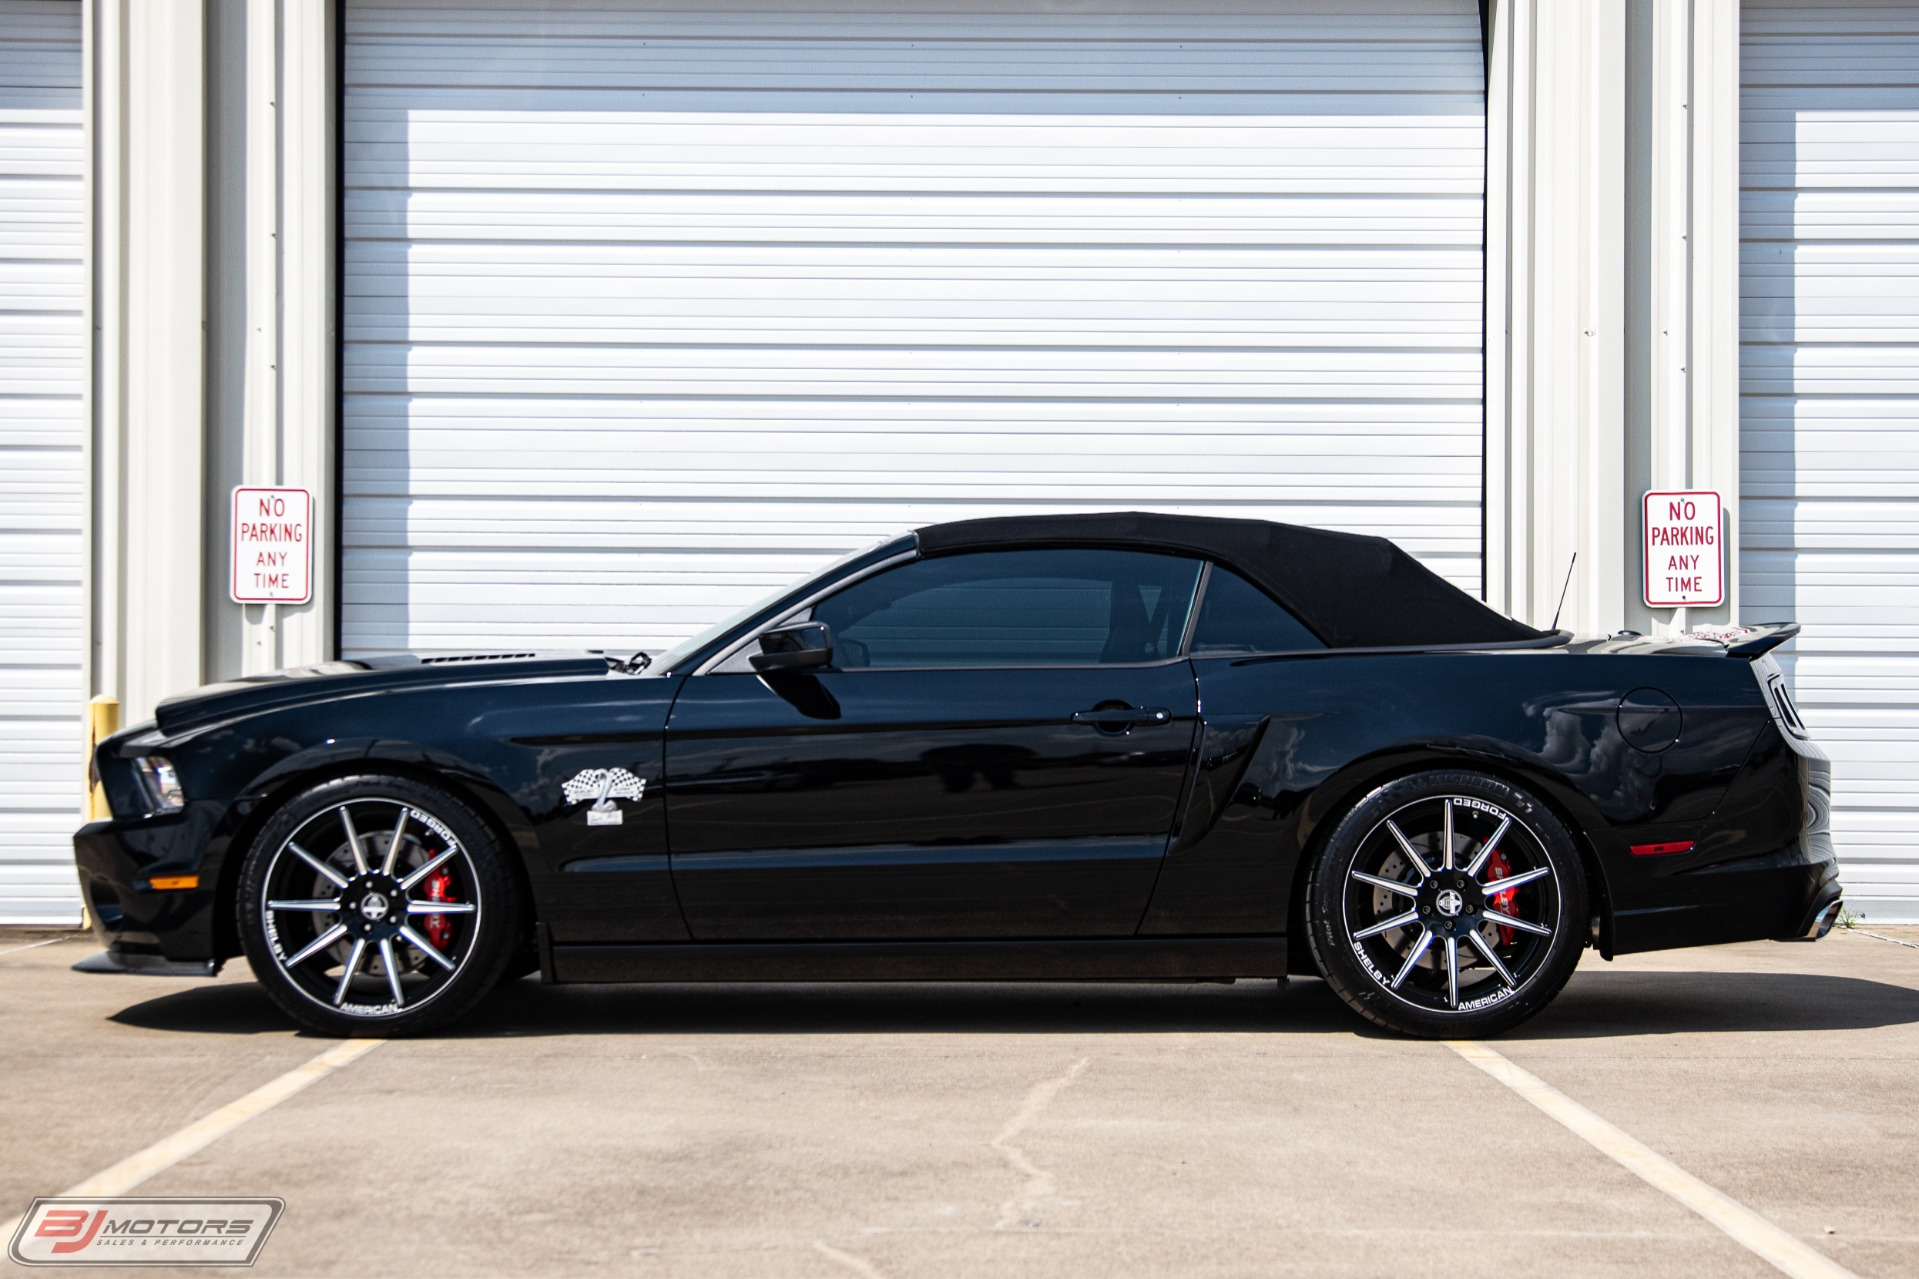 Used-2014-Ford-Mustang-Shelby-Super-Snake-Signature-Edition